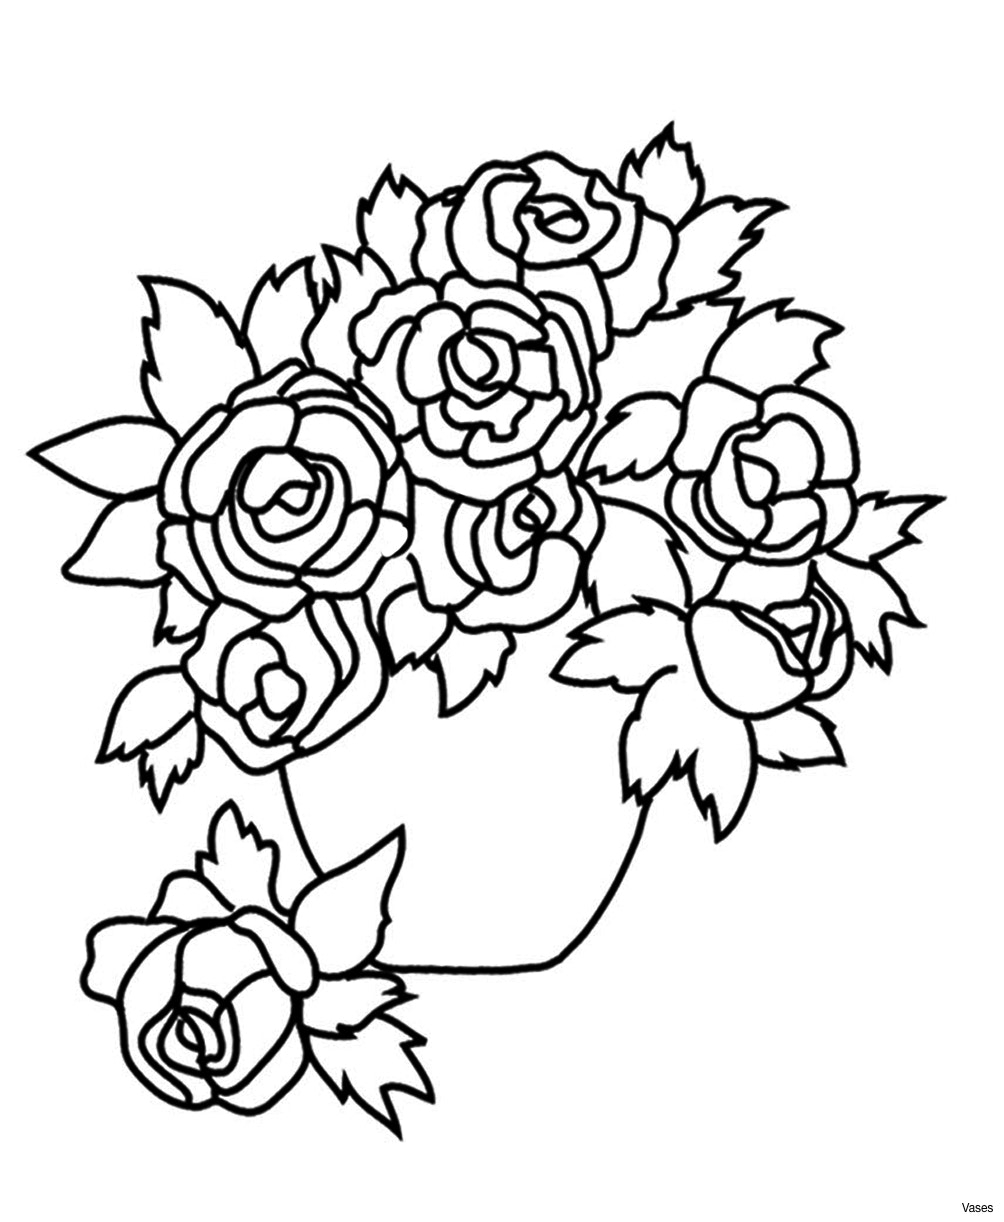 1004x1222 Best Of Vases Flower Vase Coloring Page Pages Flowers In A Top I